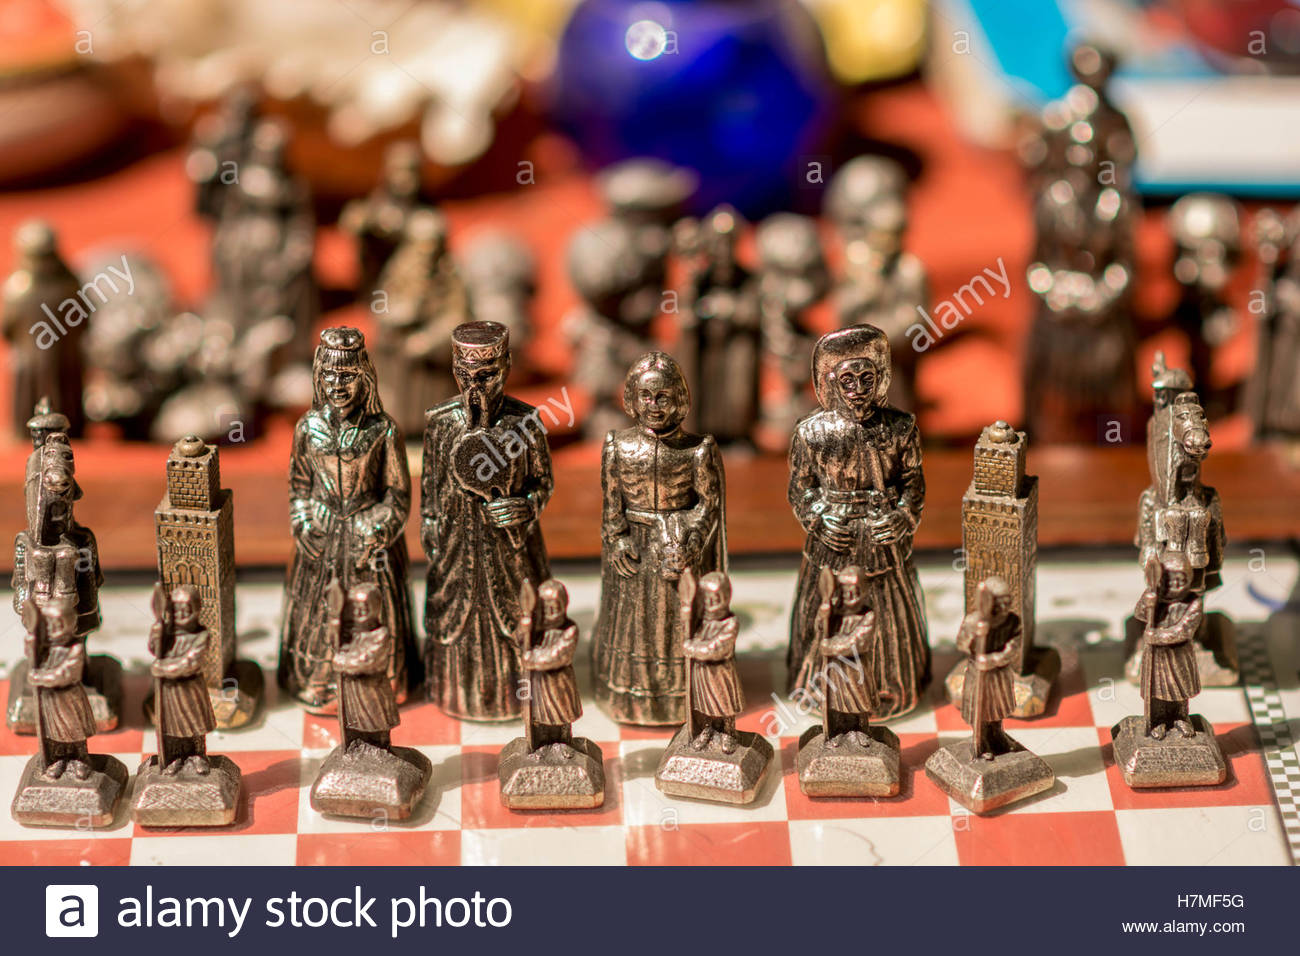 Old metal chess board on a flee market place outdoor - Stock Image